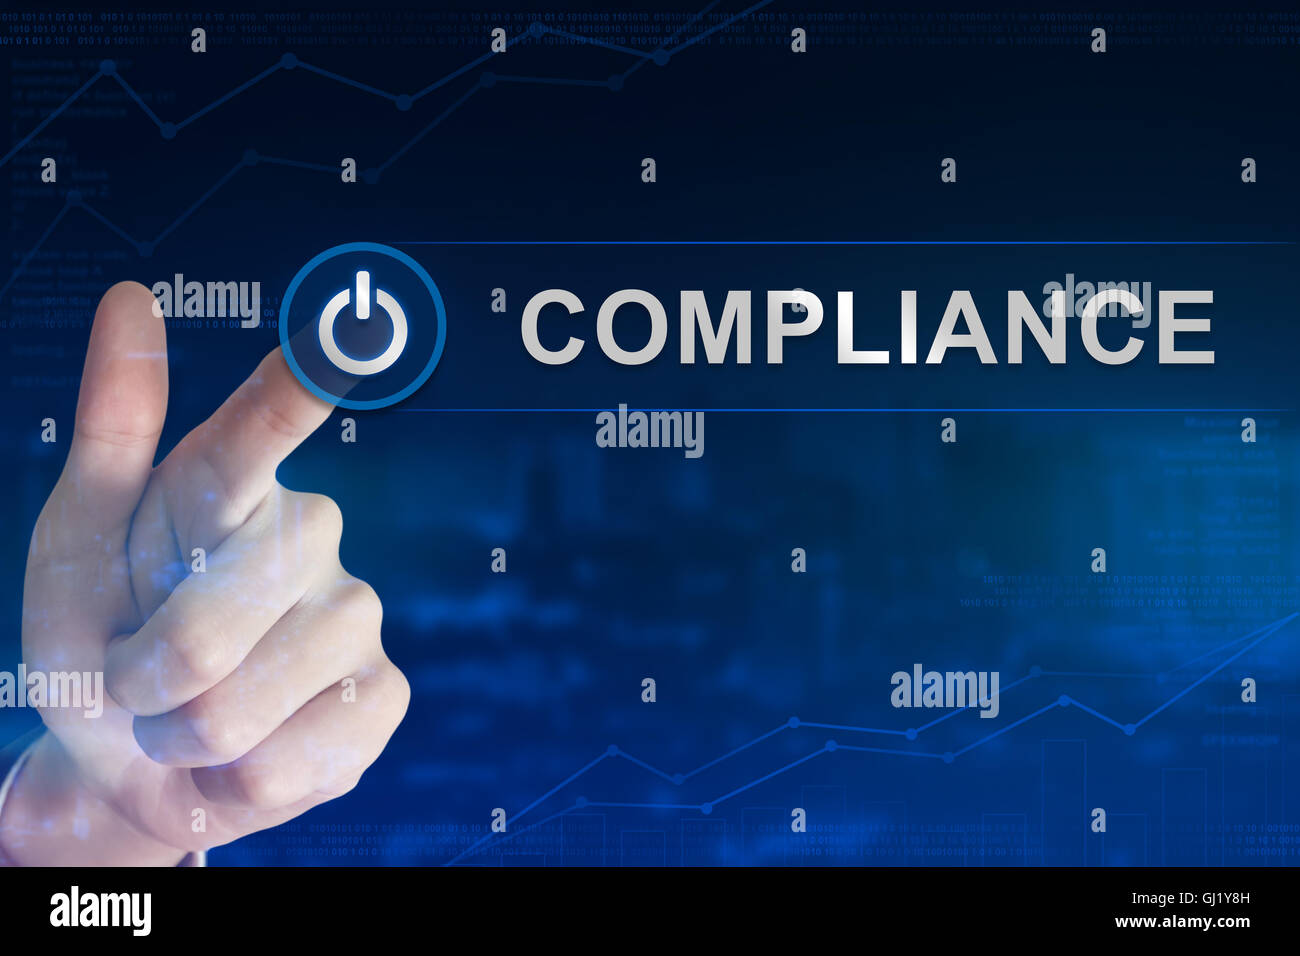 double exposure business hand clicking compliance button with blurred background - Stock Image